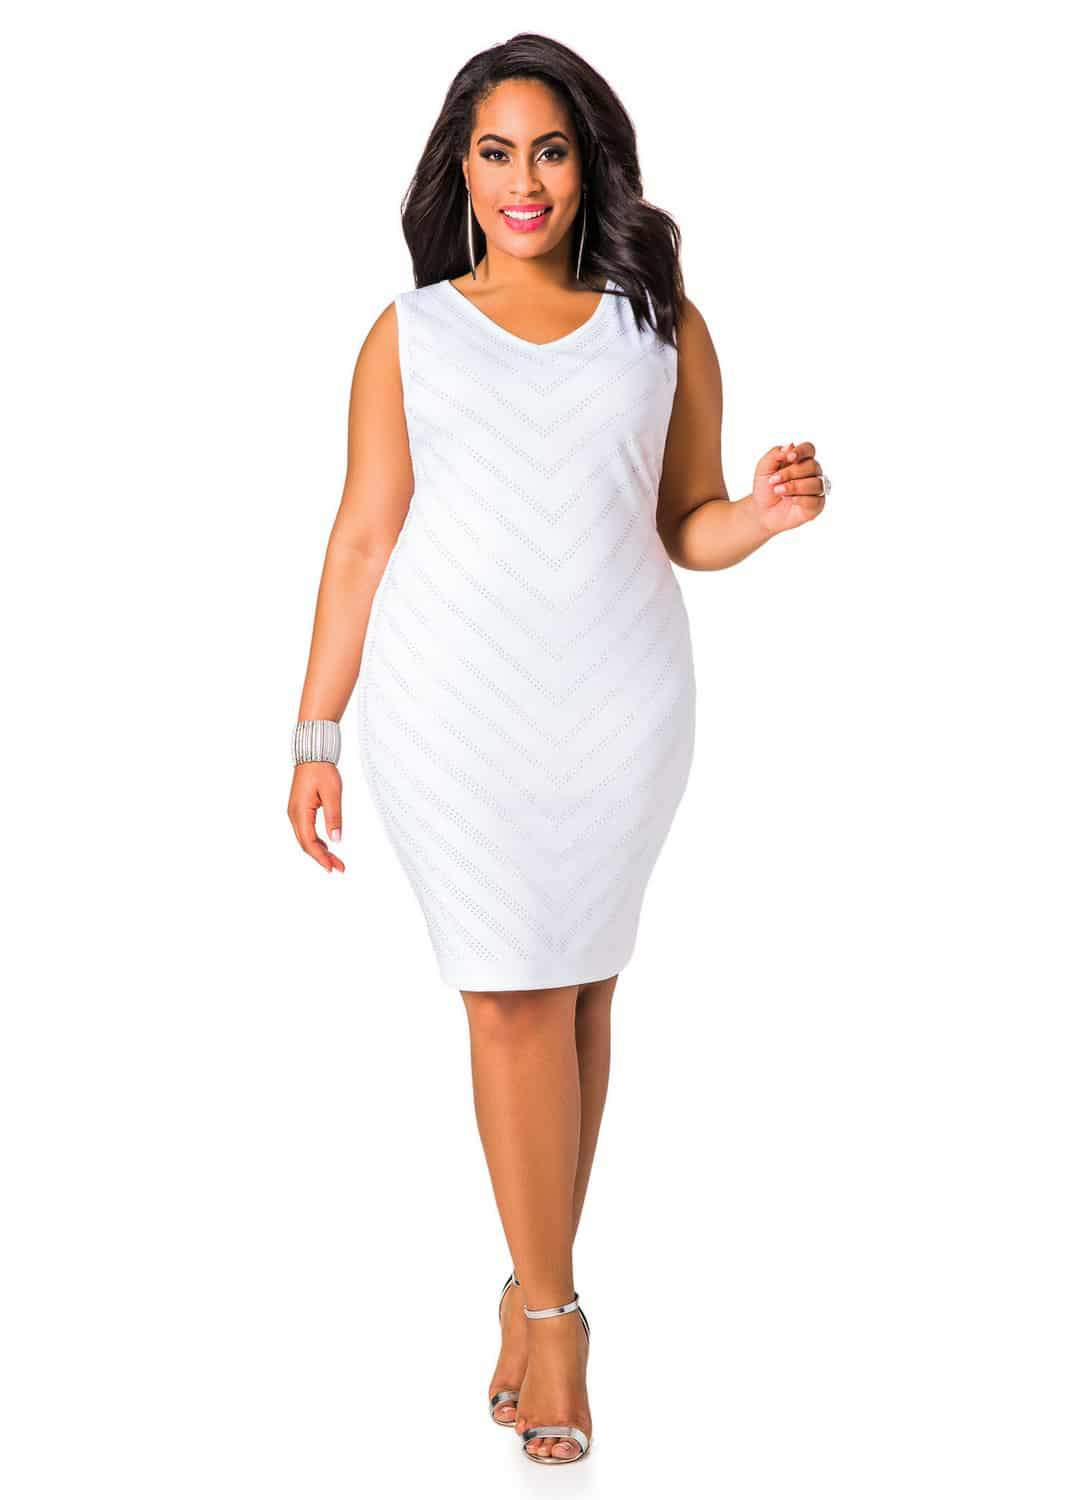 13 Summer Little White Dresses to Play In